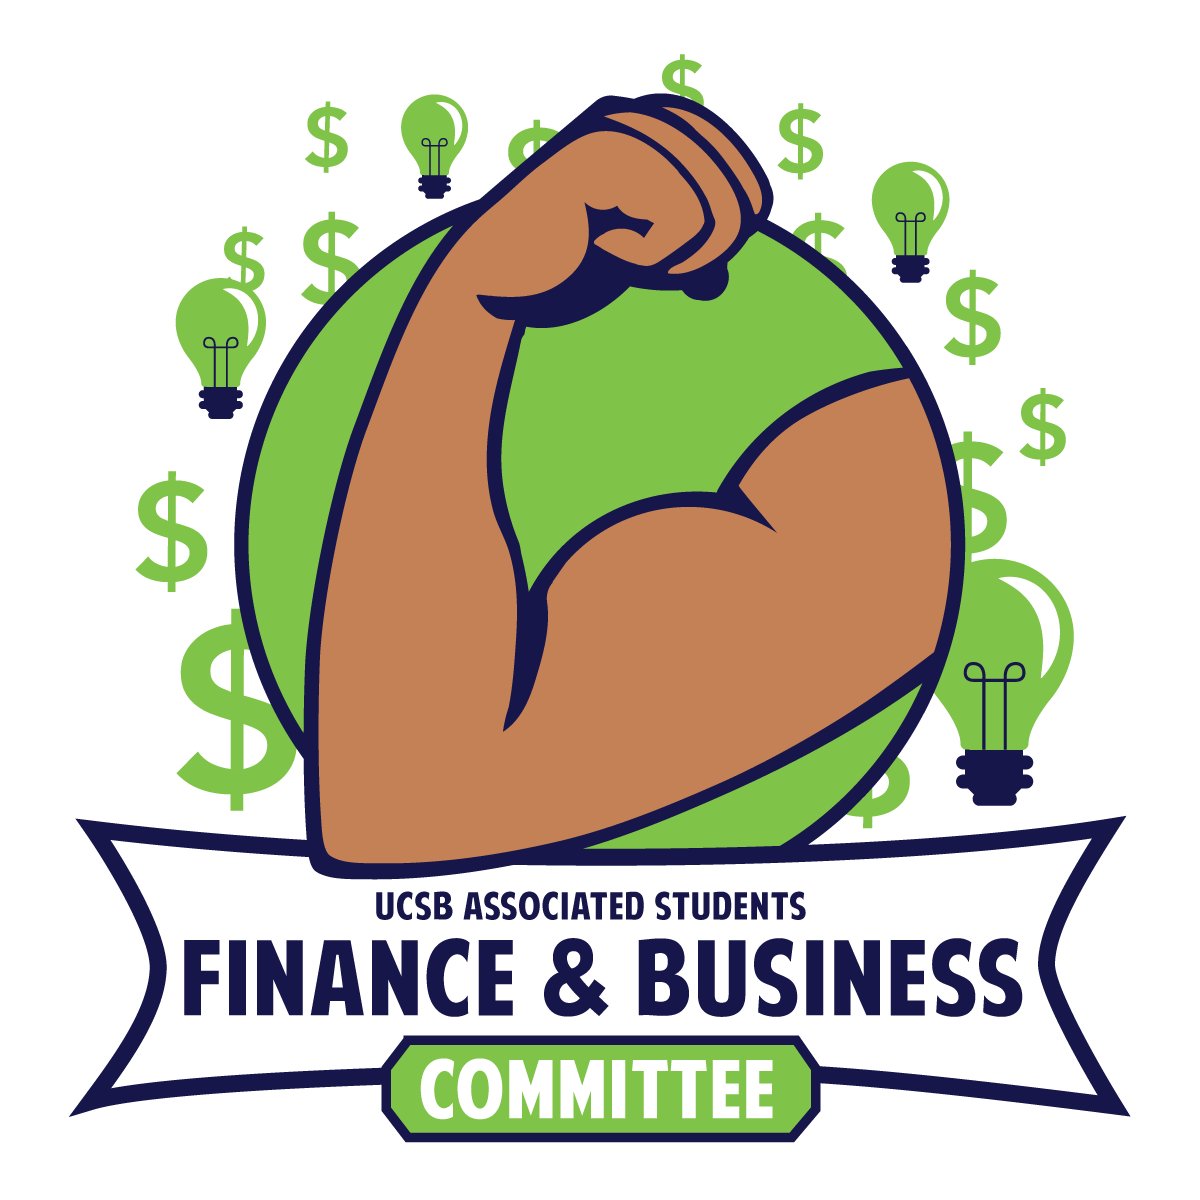 Finance clipart financial stability. Asucsb and business committee